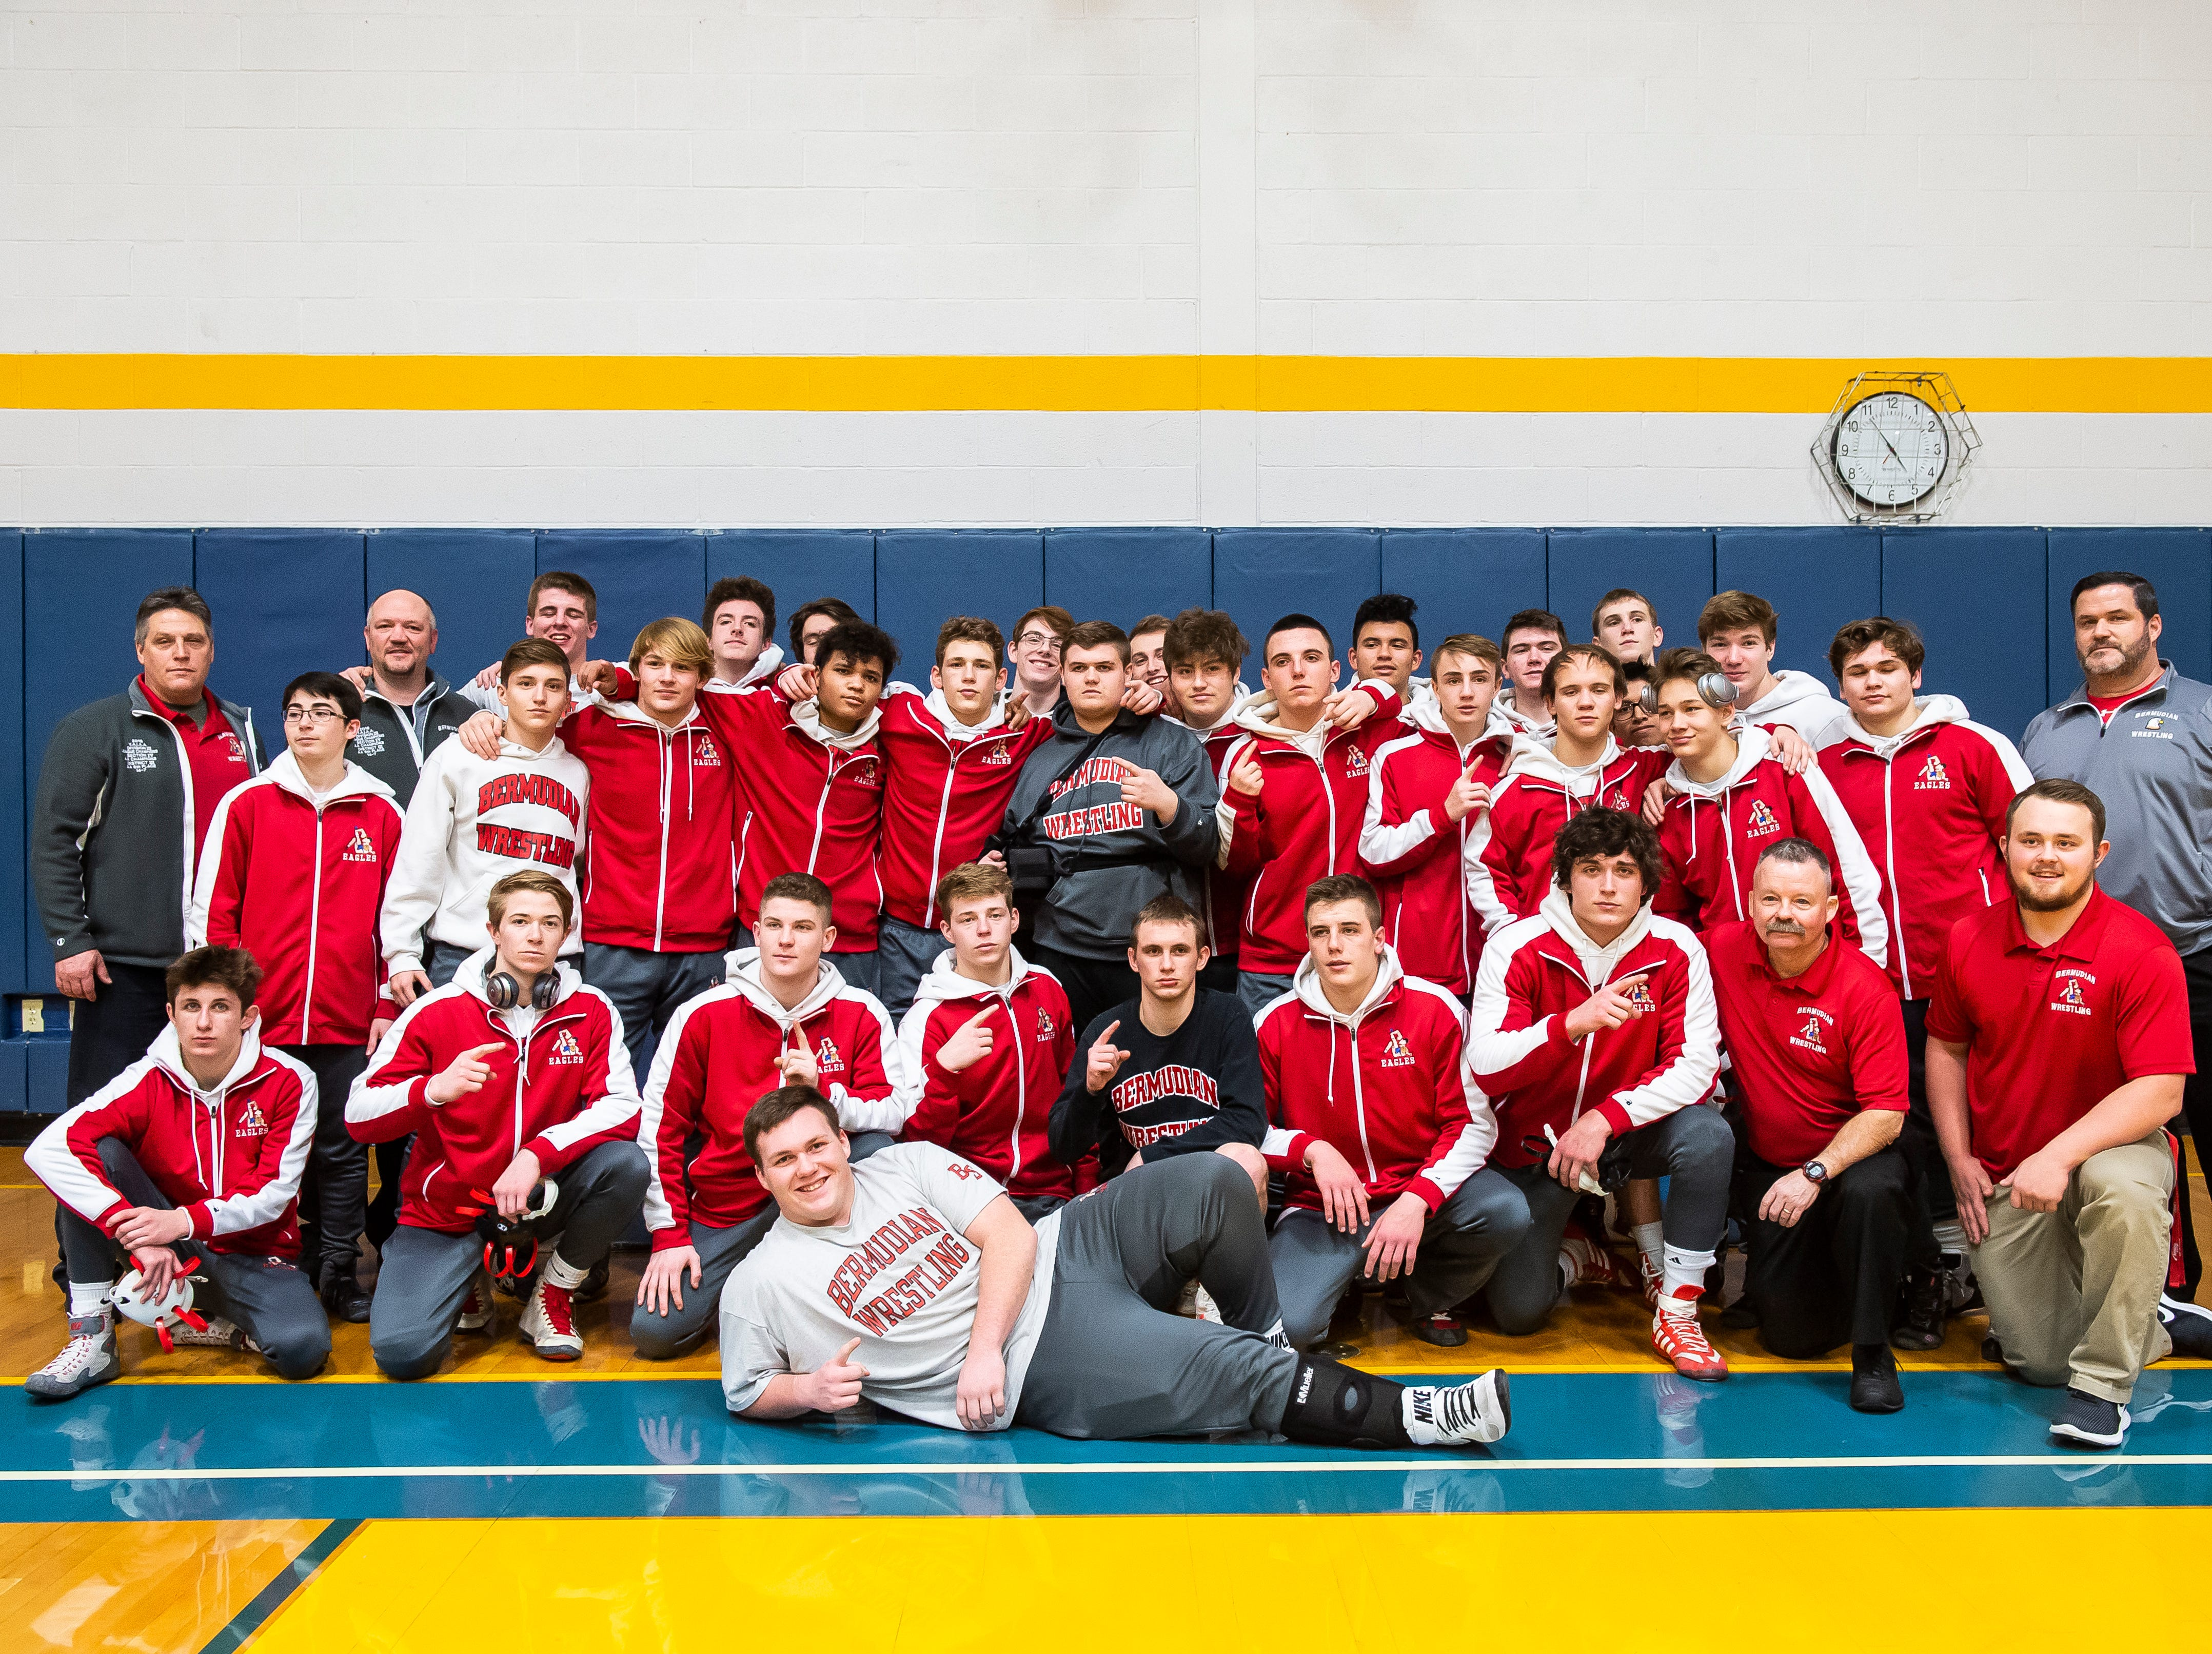 The Bermudian Springs wrestling team pose for a team photo after defeating Littlestown 62-12 to capture the YAIAA Division 3 title on Thursday, January 24, 2019.